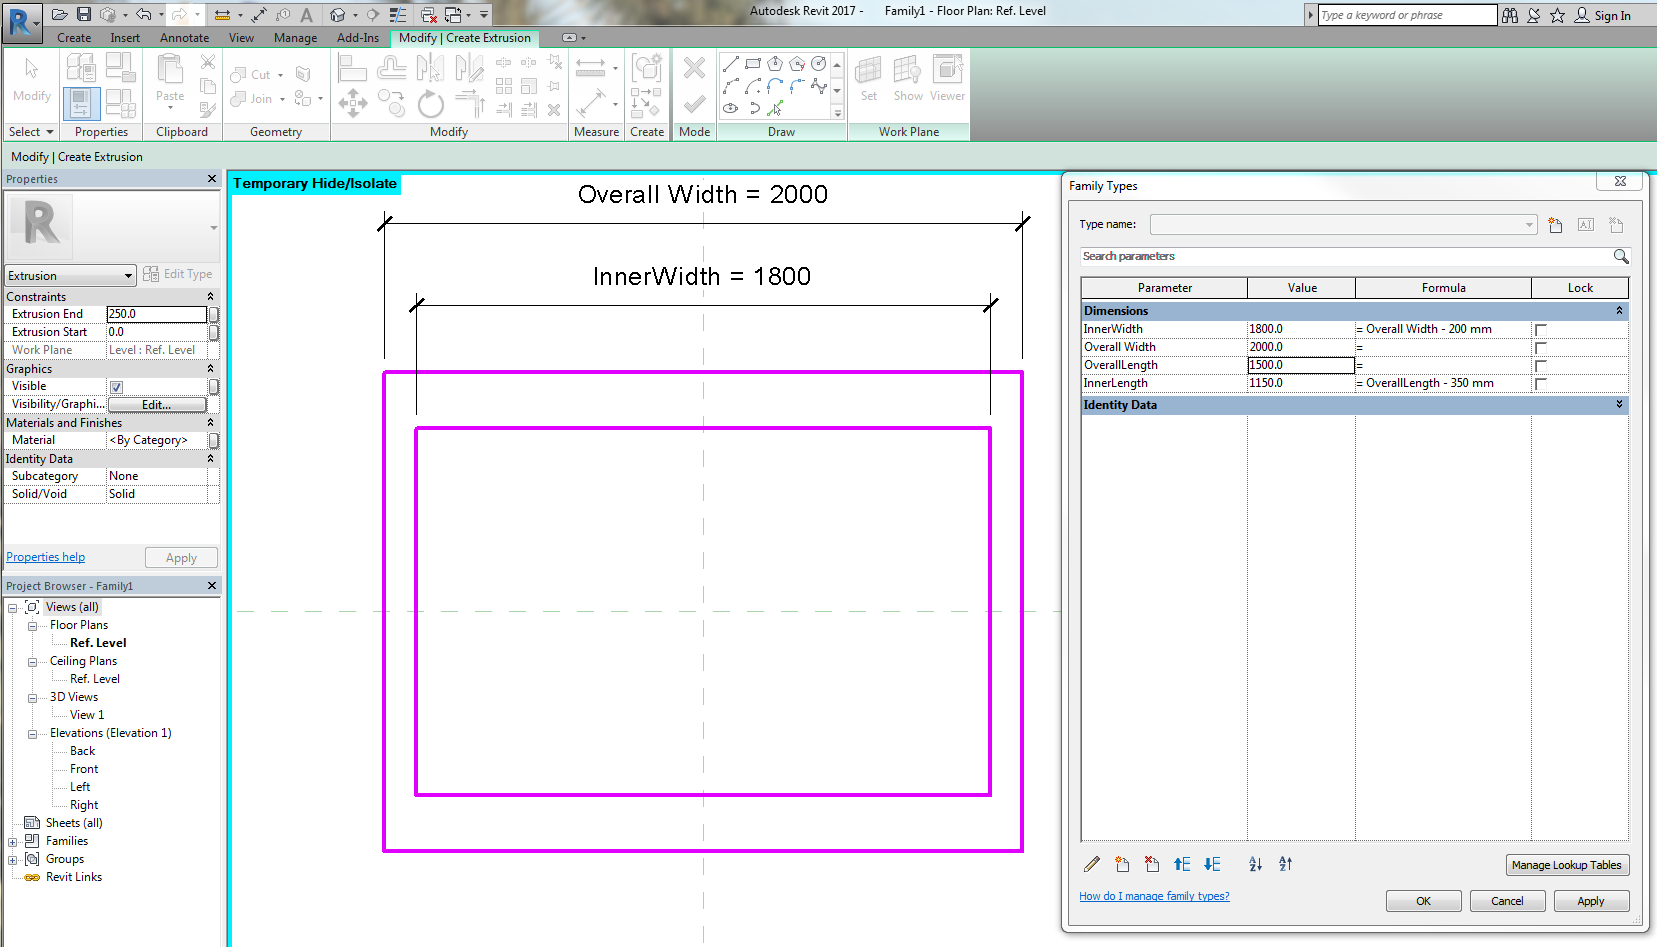 How to Use Formulas in Autodesk Revit recommendations